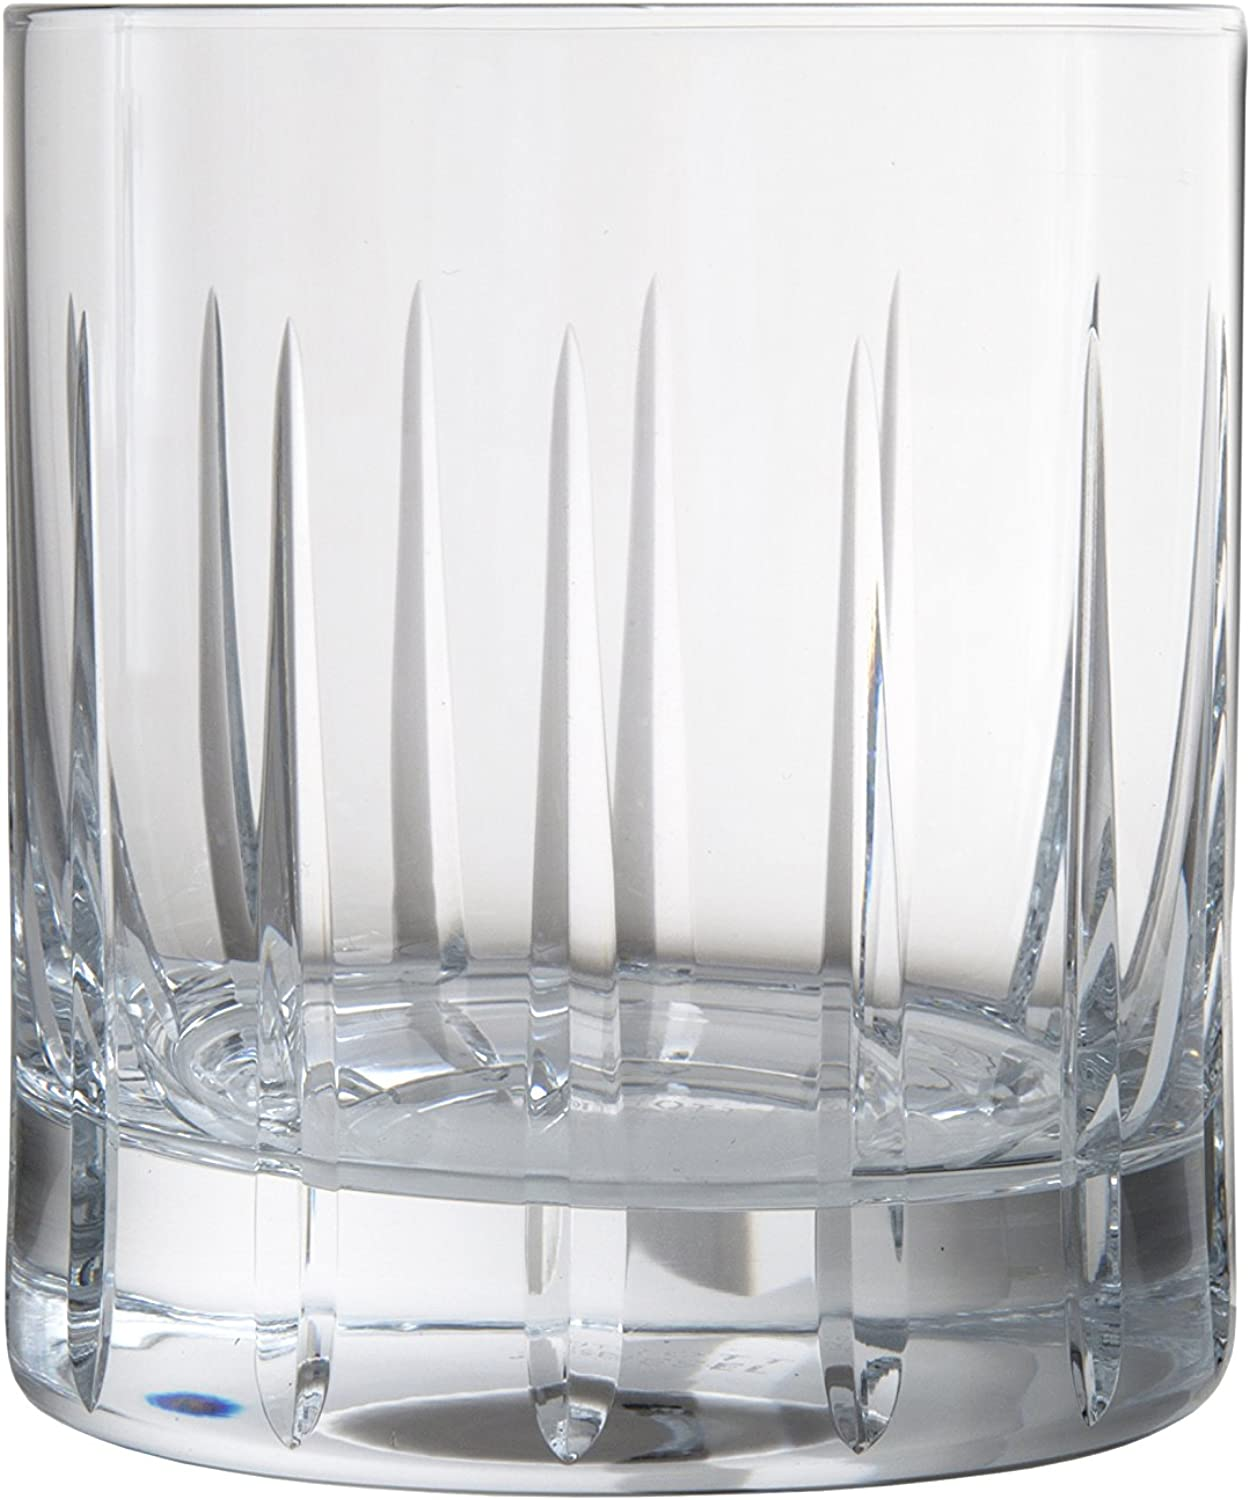 Schott Zwiesel Tritan Crystal Glass Distil Barware Collection Kirkwall Old Fashioned Cocktail Glasses (Set of 6), 9.8 oz, Clear